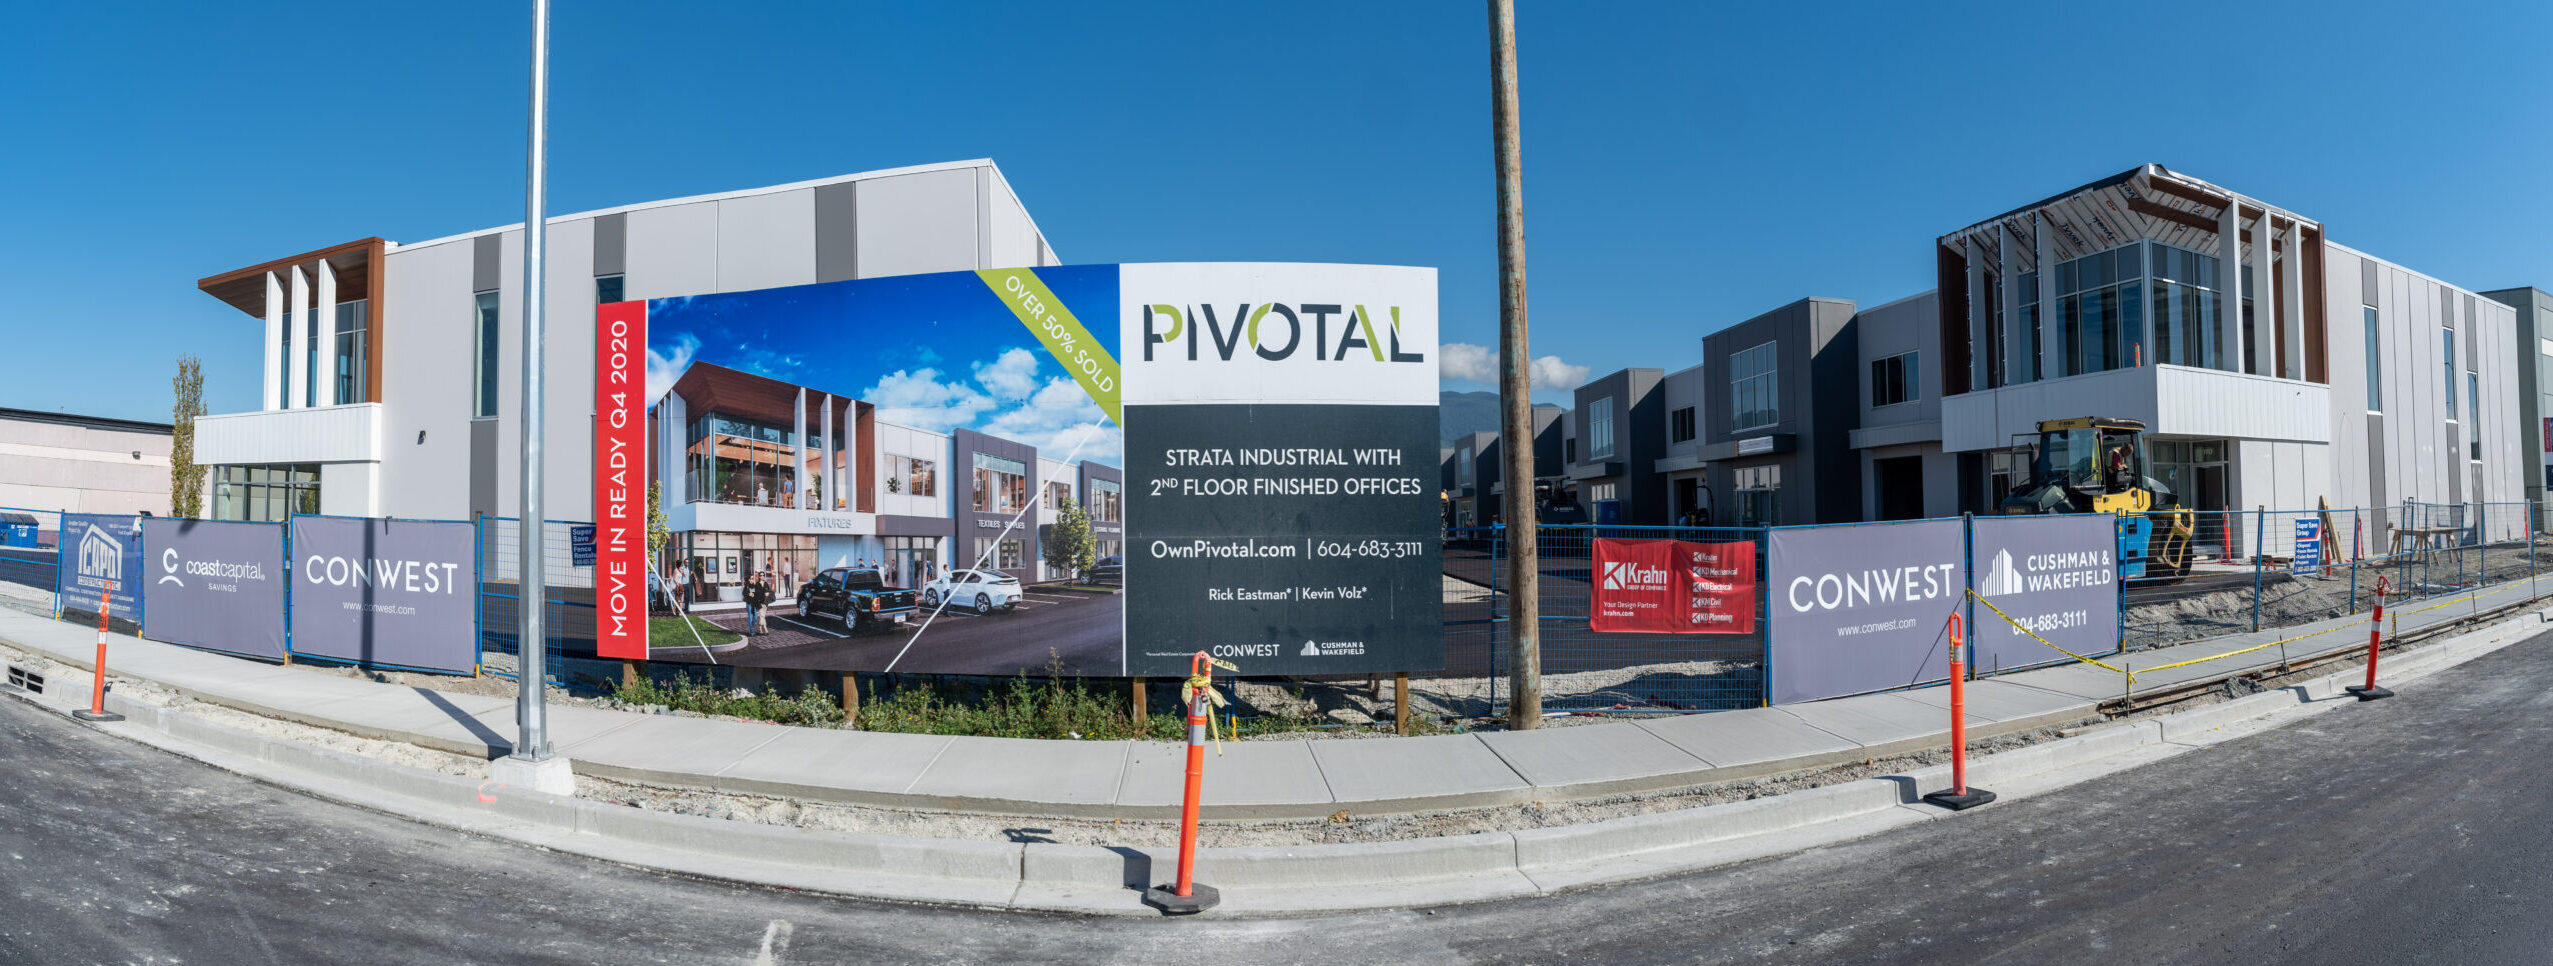 PIVOTAL NEARING COMPLETION: A CONSTRUCTION UPDATE